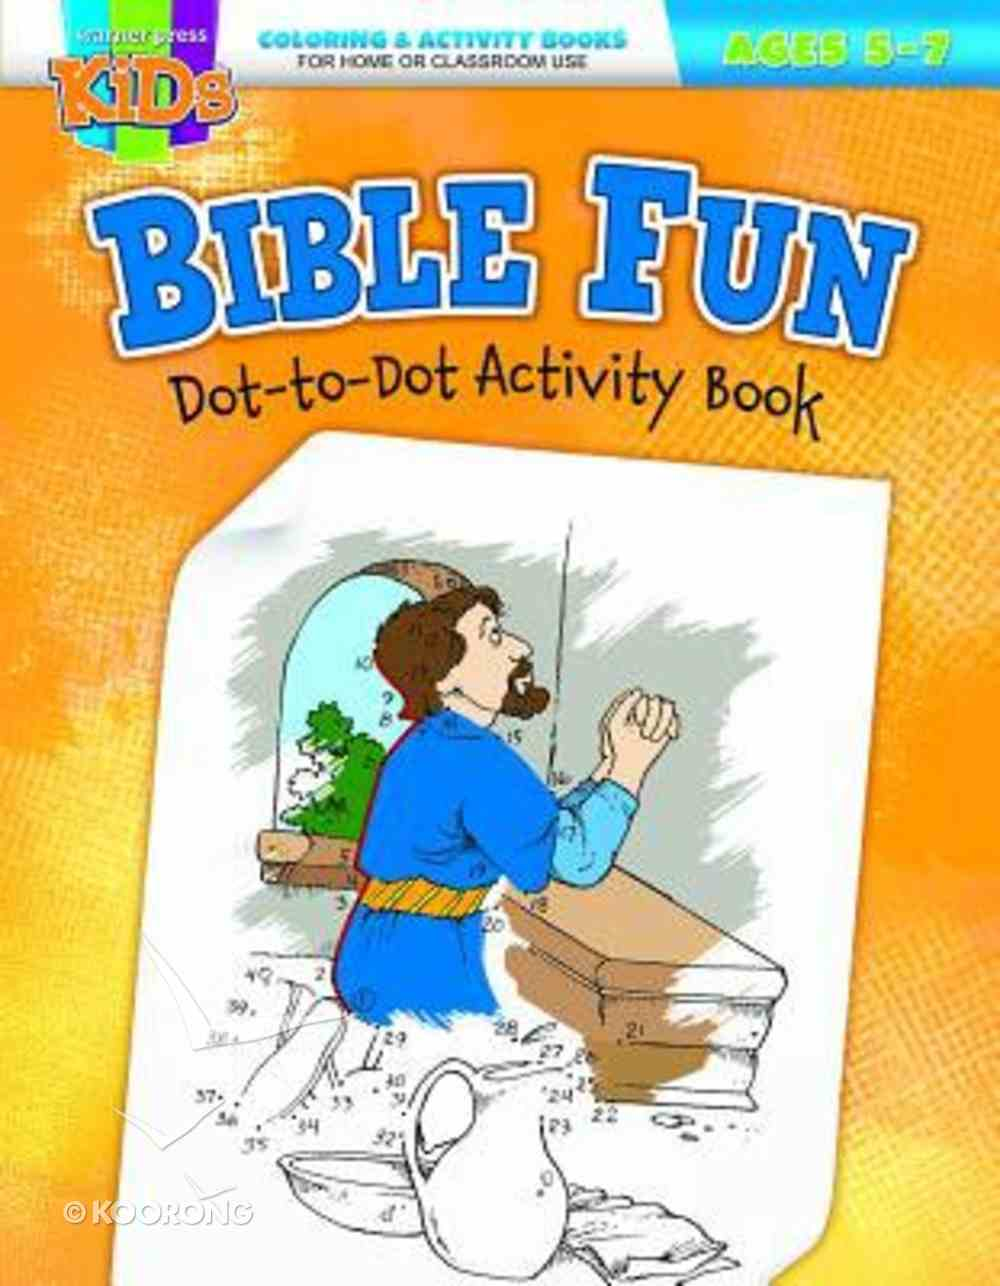 Bible Fun Dot-To-Dot (Ages 5-7, Reproducible) (Warner Press Colouring & Activity Books Series) Paperback